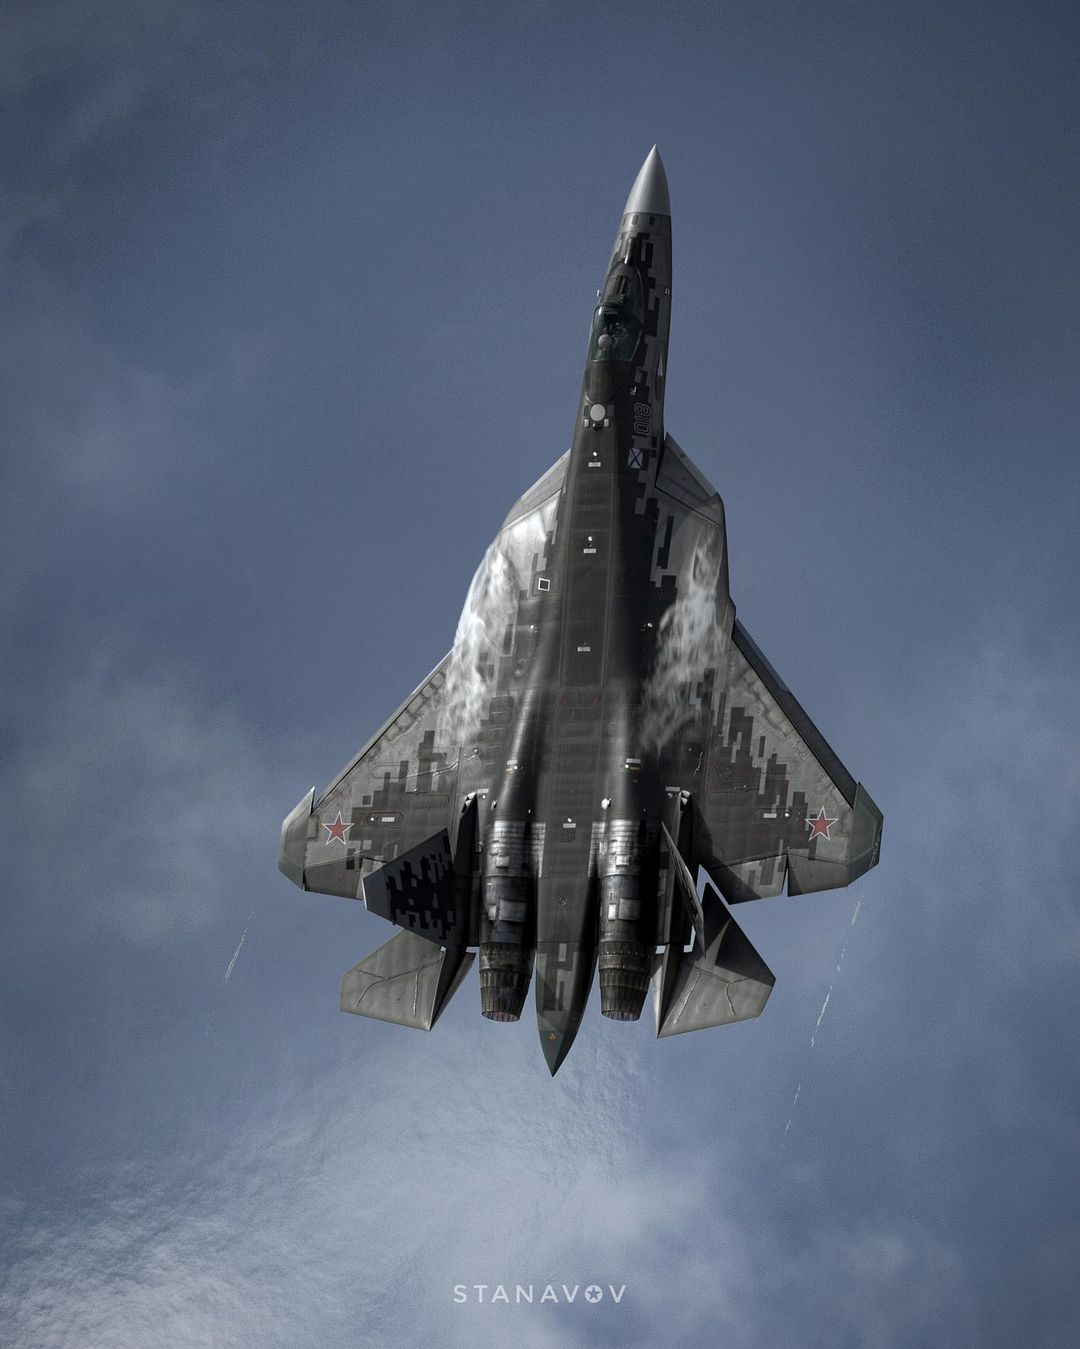 Su-57 Stealth Fighter: News #7 - Page 40 FAriajlXIAIq9ct?format=jpg&name=large